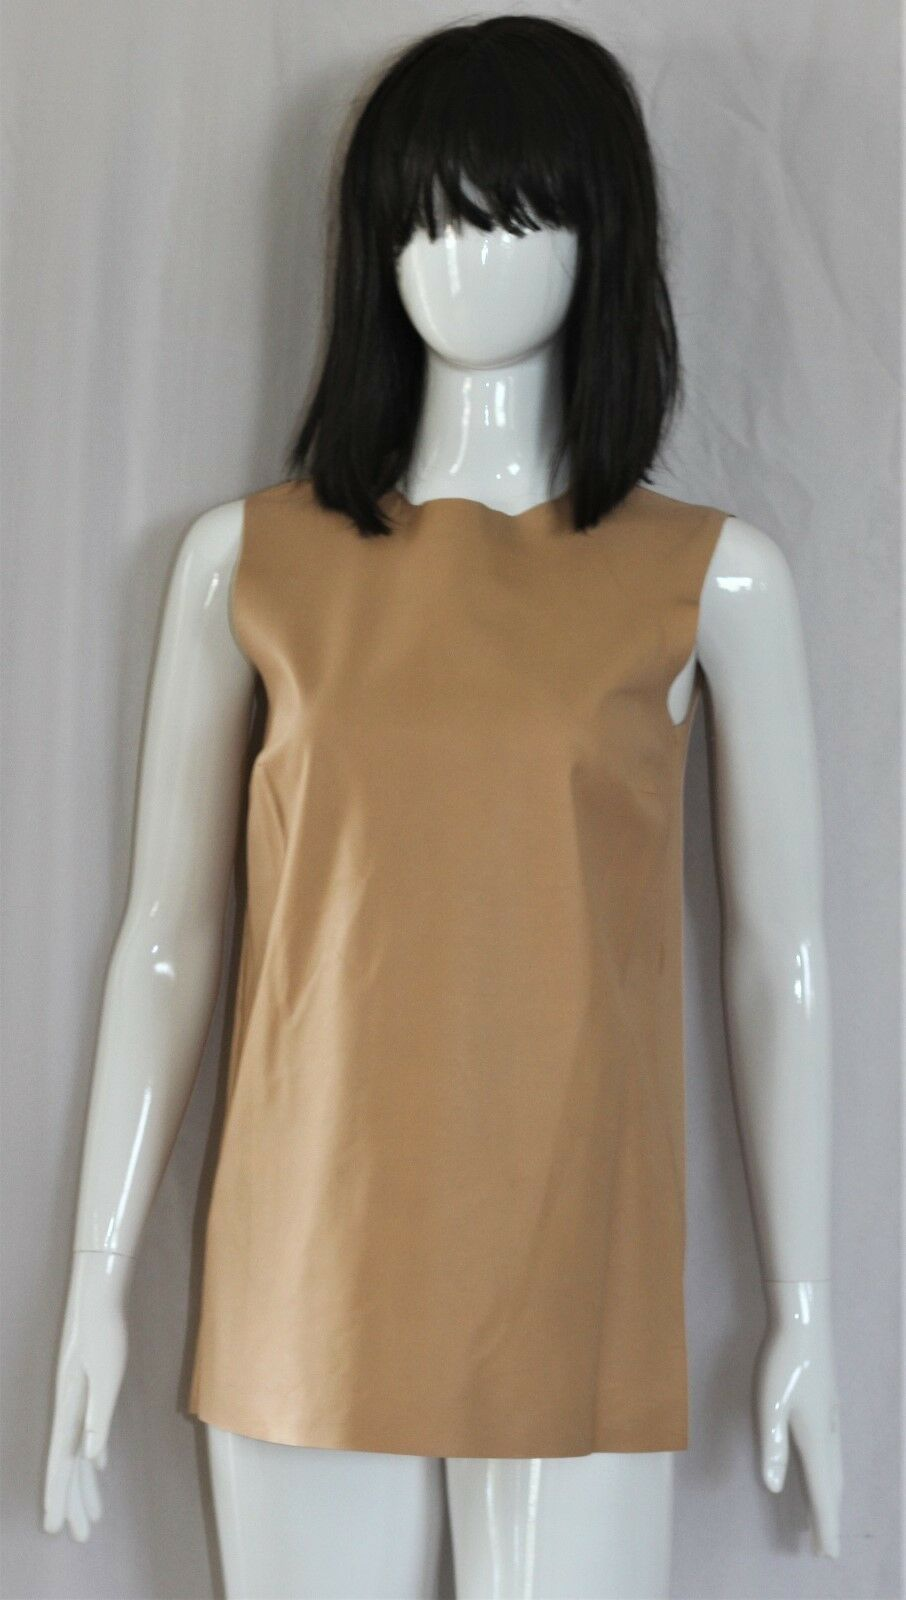 NEW PRADA  Beige Nappa Leather Sleeveless Top Shirt Blouse 40 4 6